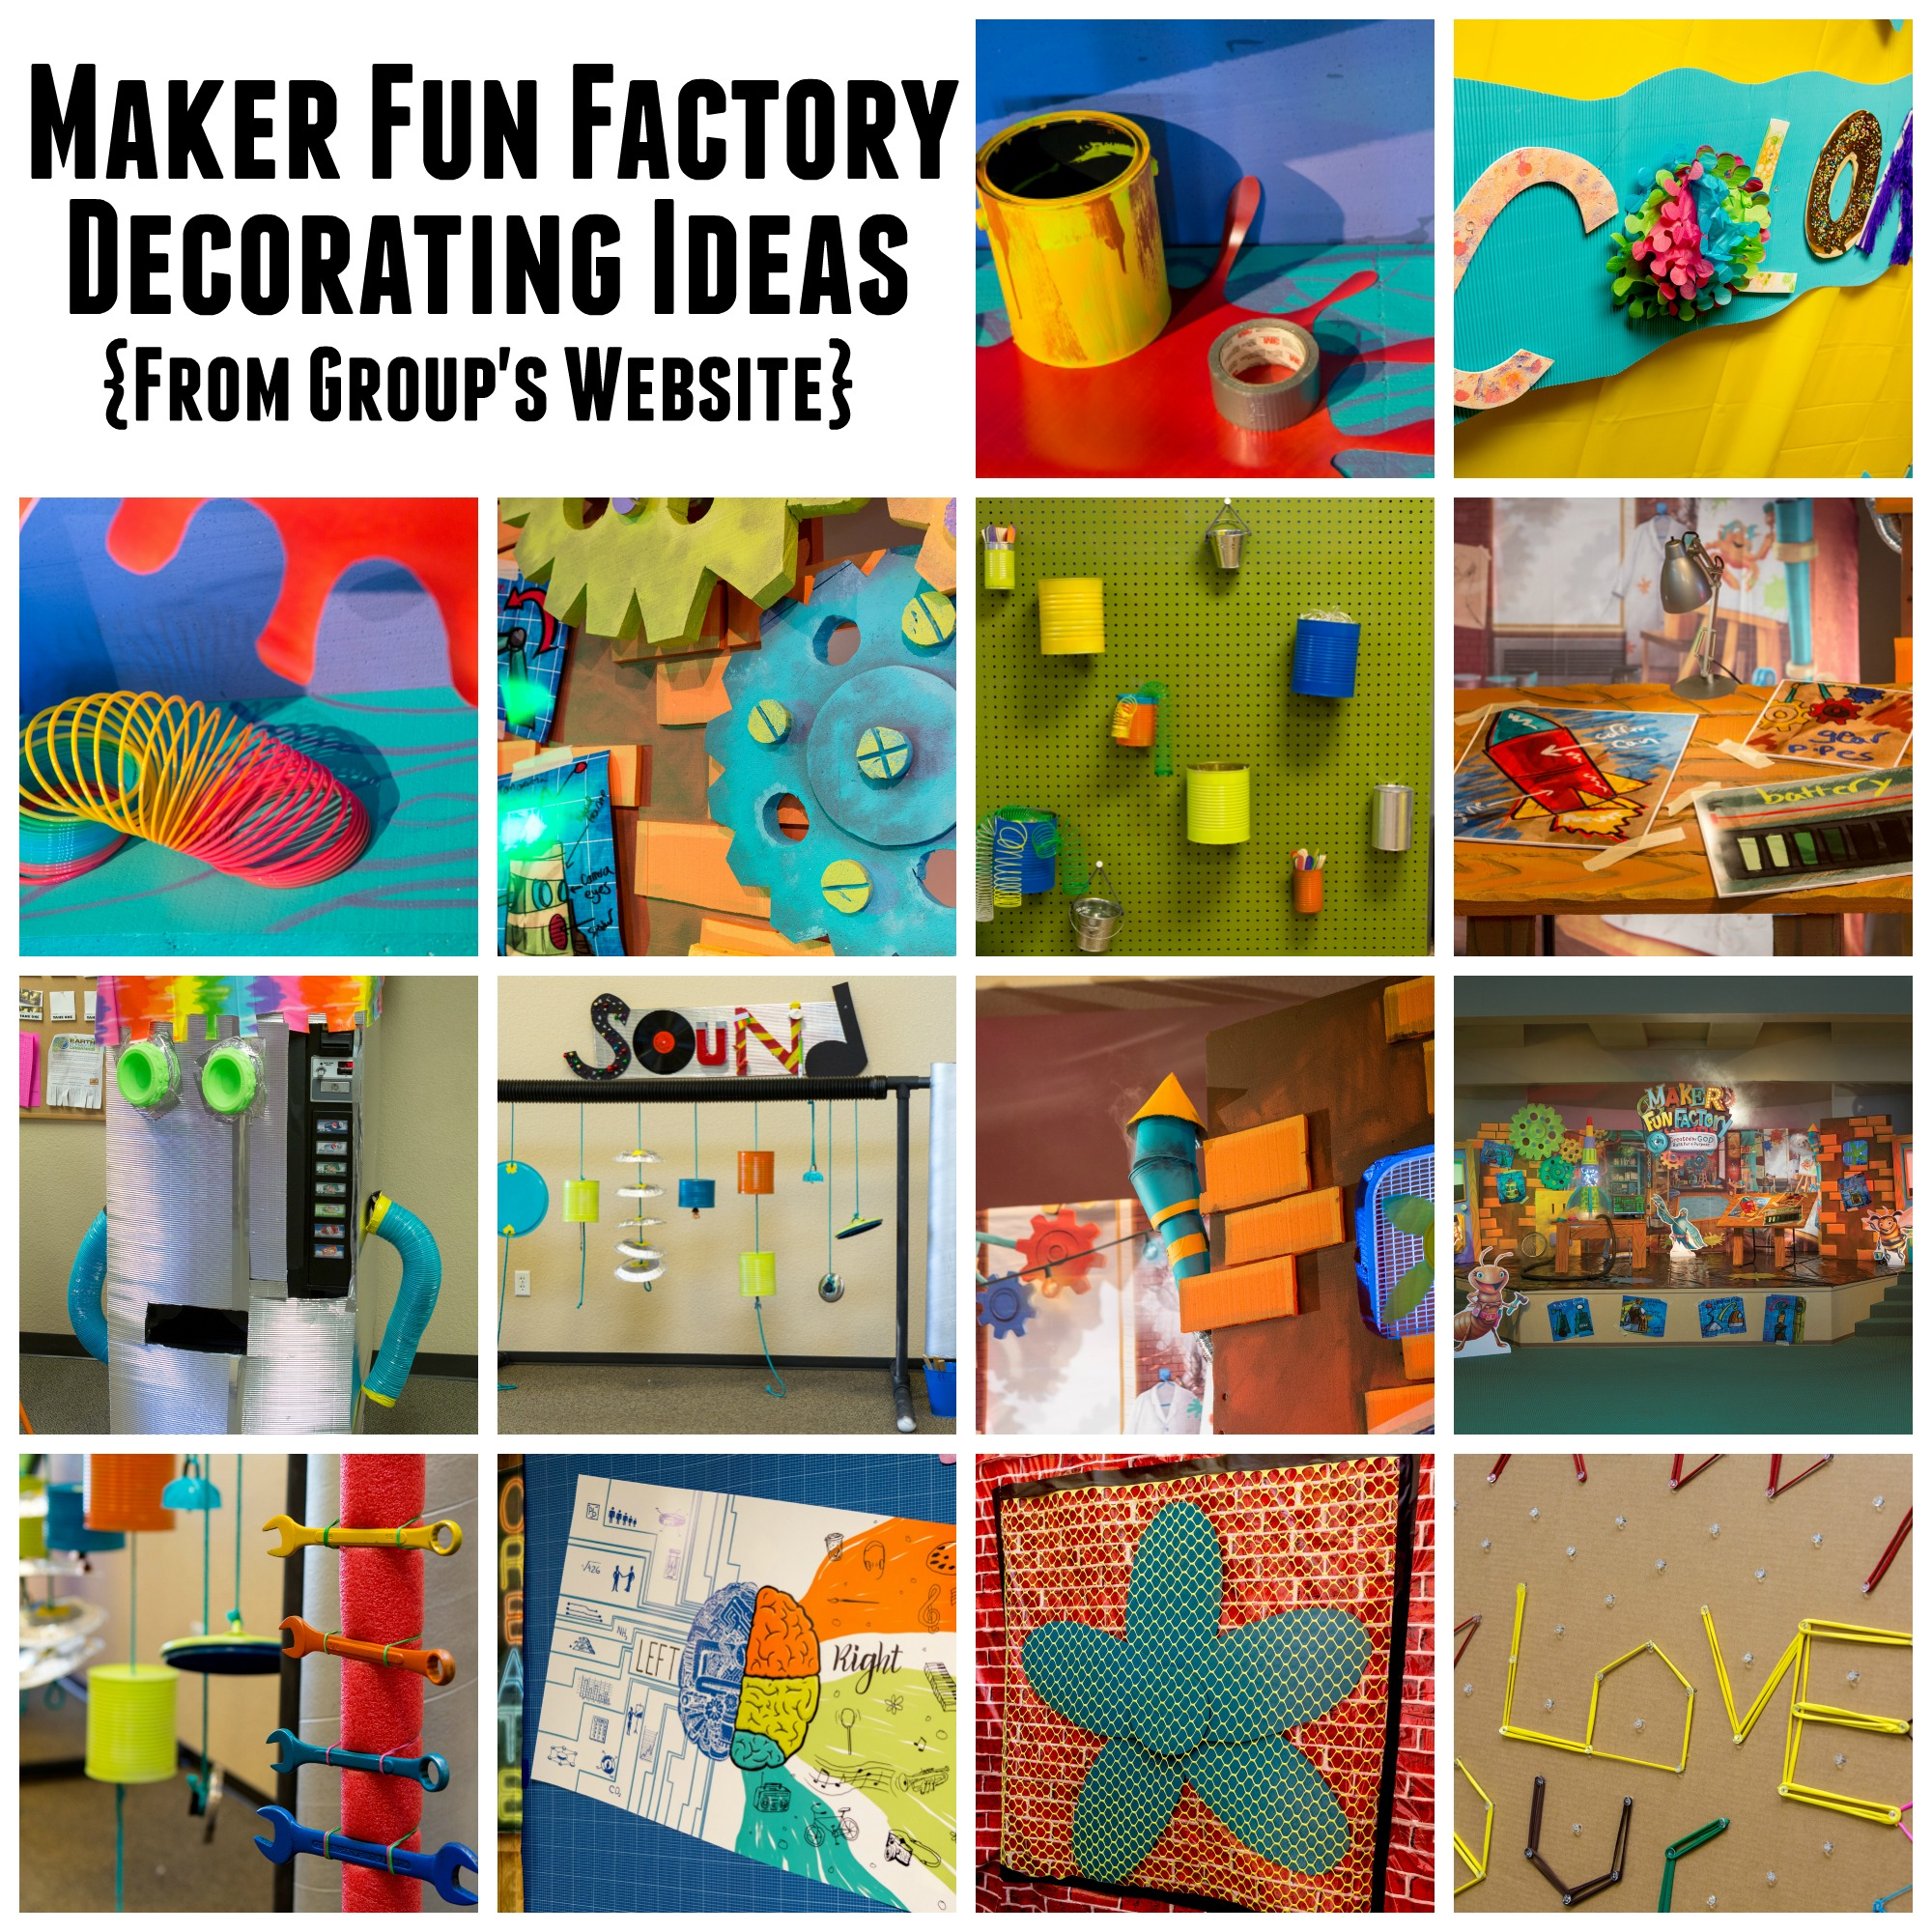 Group Publishing Vbs 2017 Maker Fun Factory Decorating